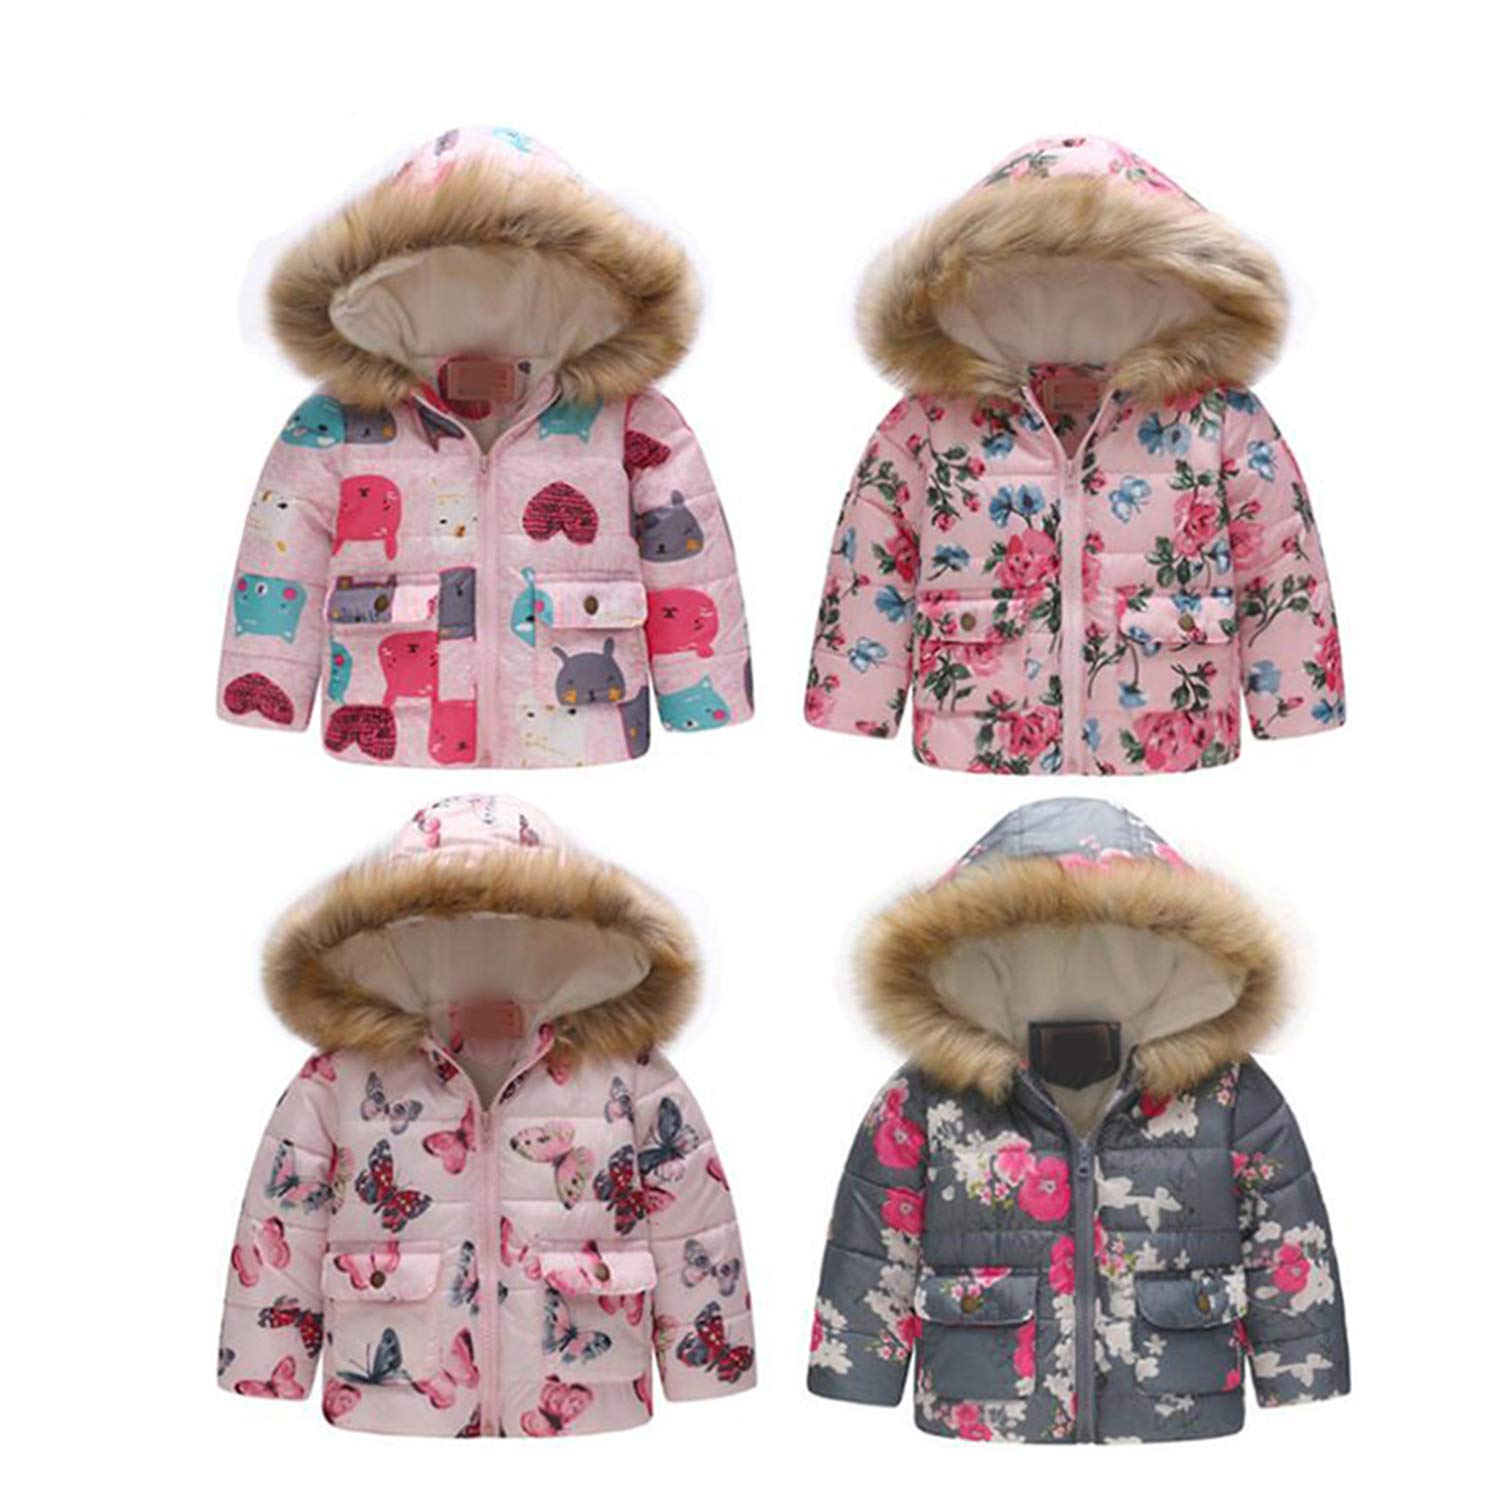 Girls Winter Coat Autumn Jacket for Girls Coat Kids Thick Warm Floral Hooded Children Outerwear Baby Coat Boys Girl Clothes